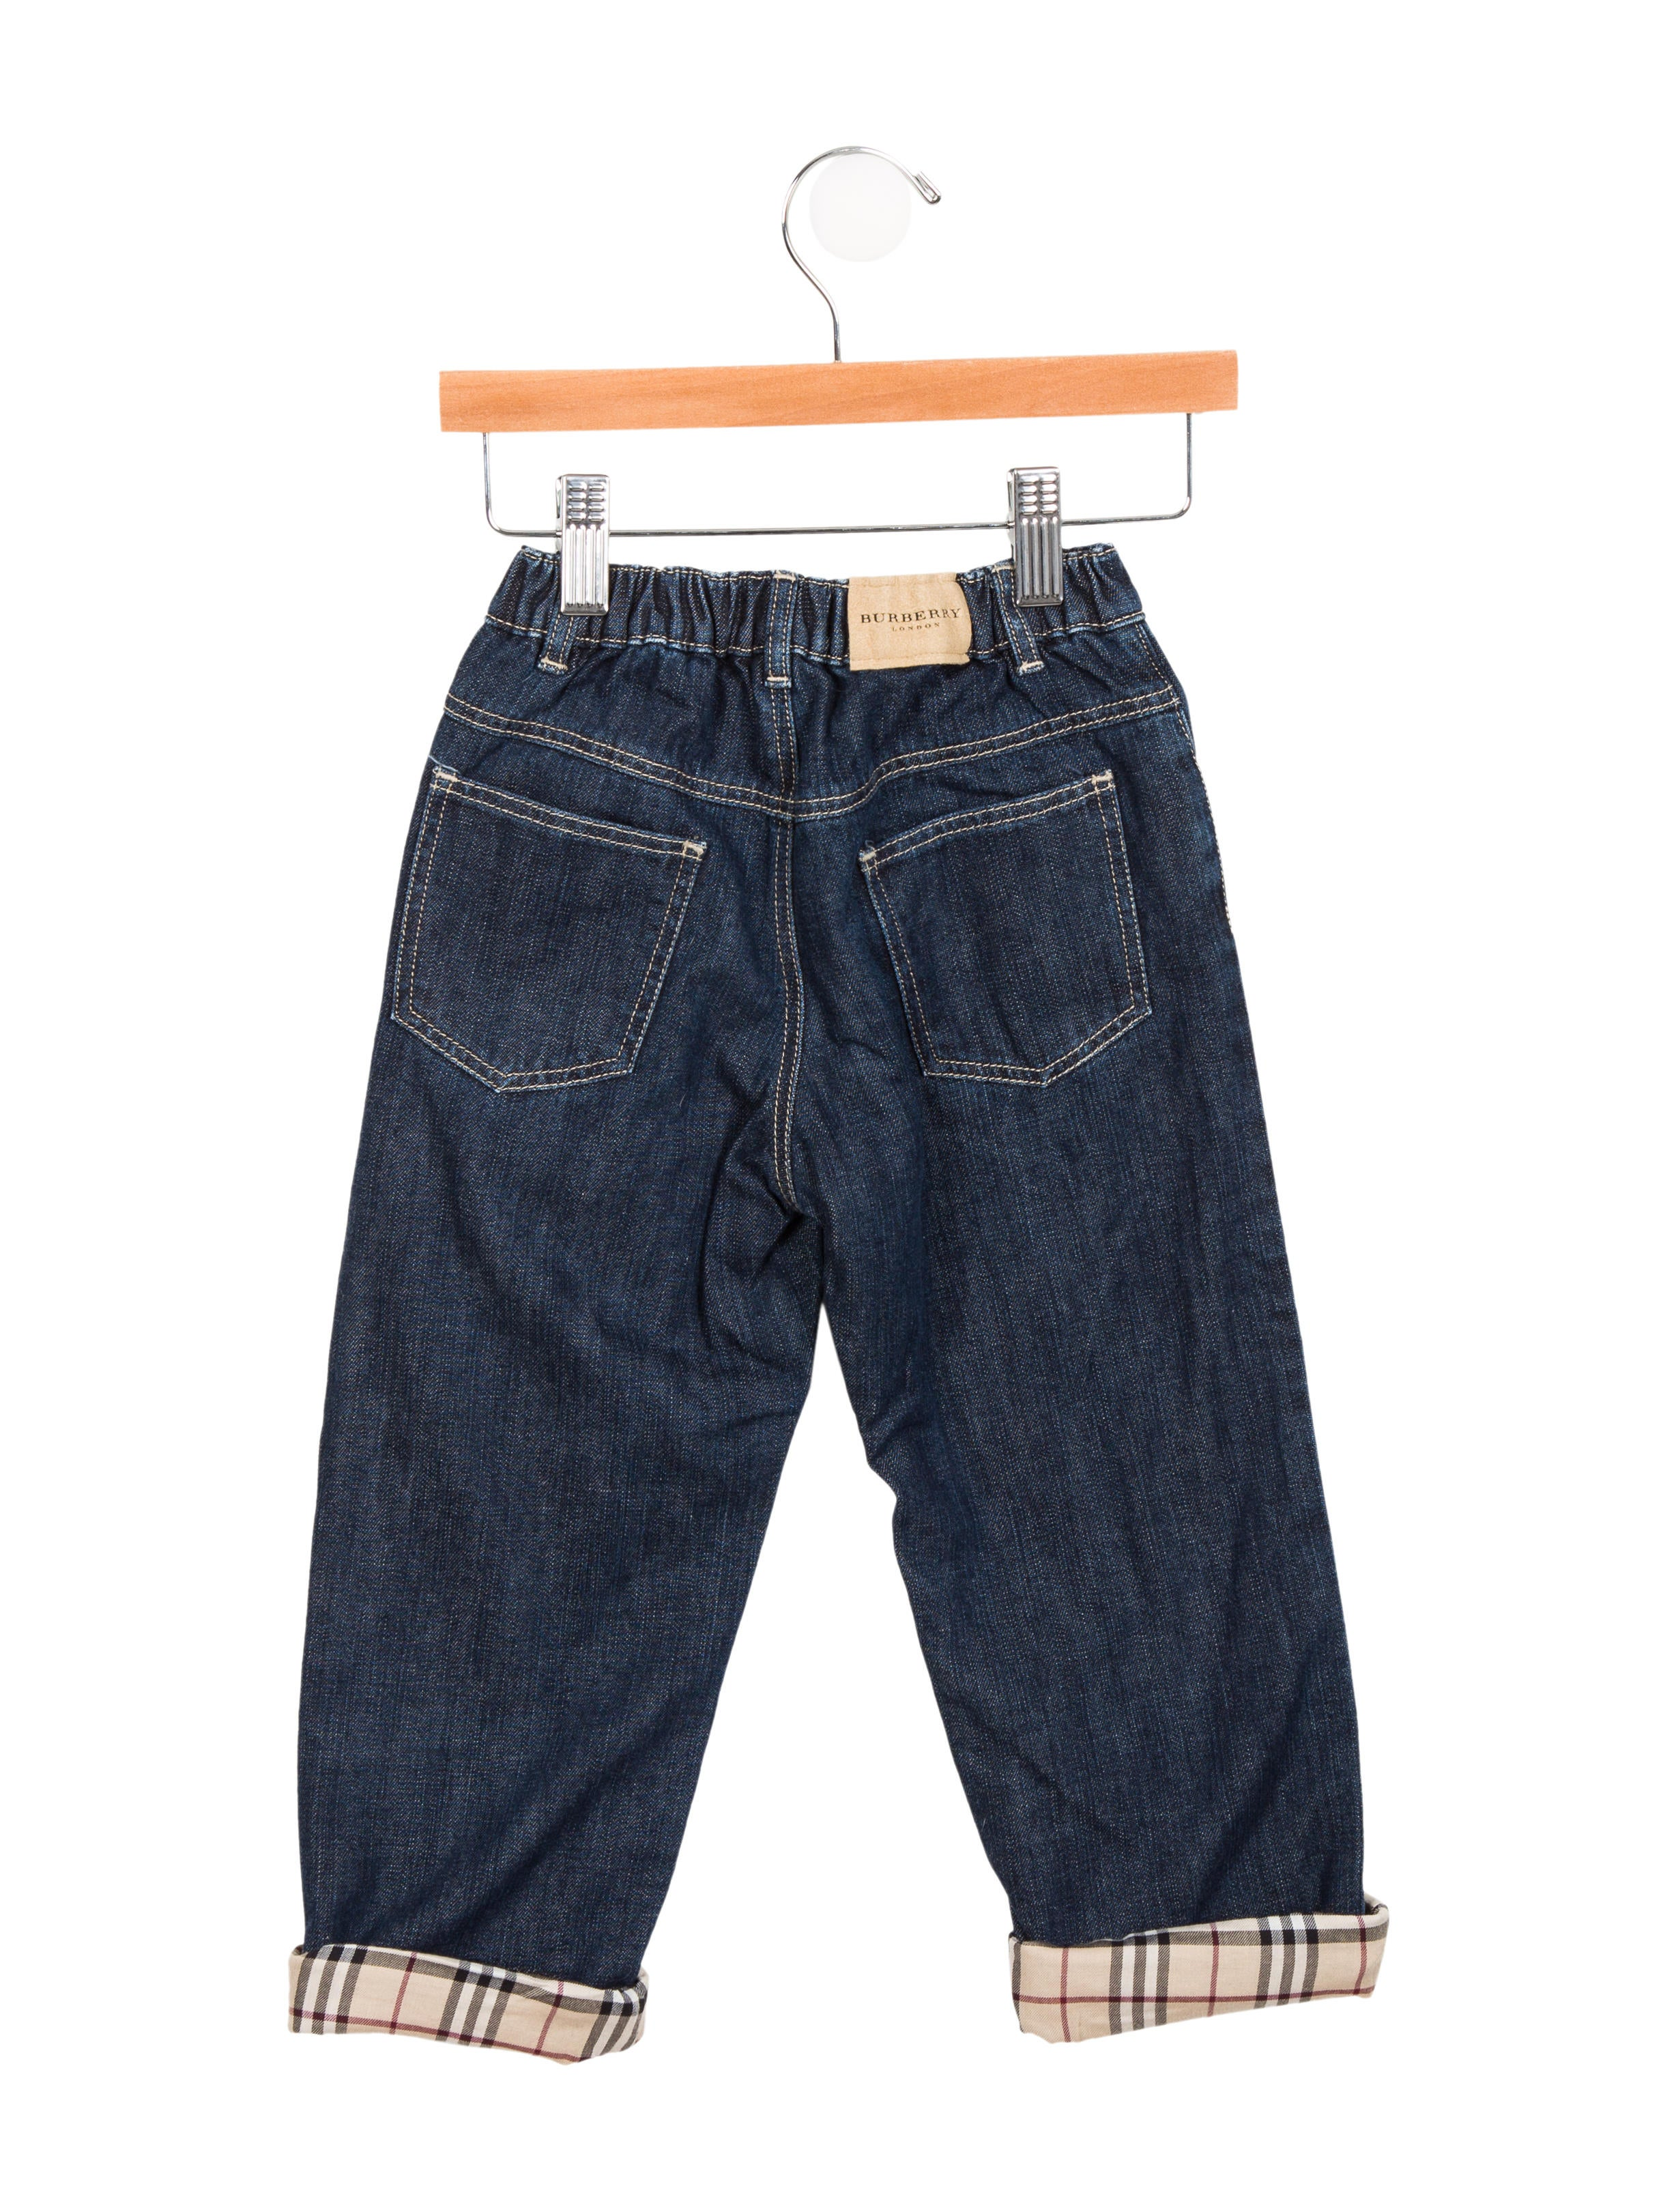 Burberry Boys Mid Rise Straight Leg Jeans Boys  : BUR791222enlarged from www.therealreal.com size 2456 x 3241 jpeg 756kB